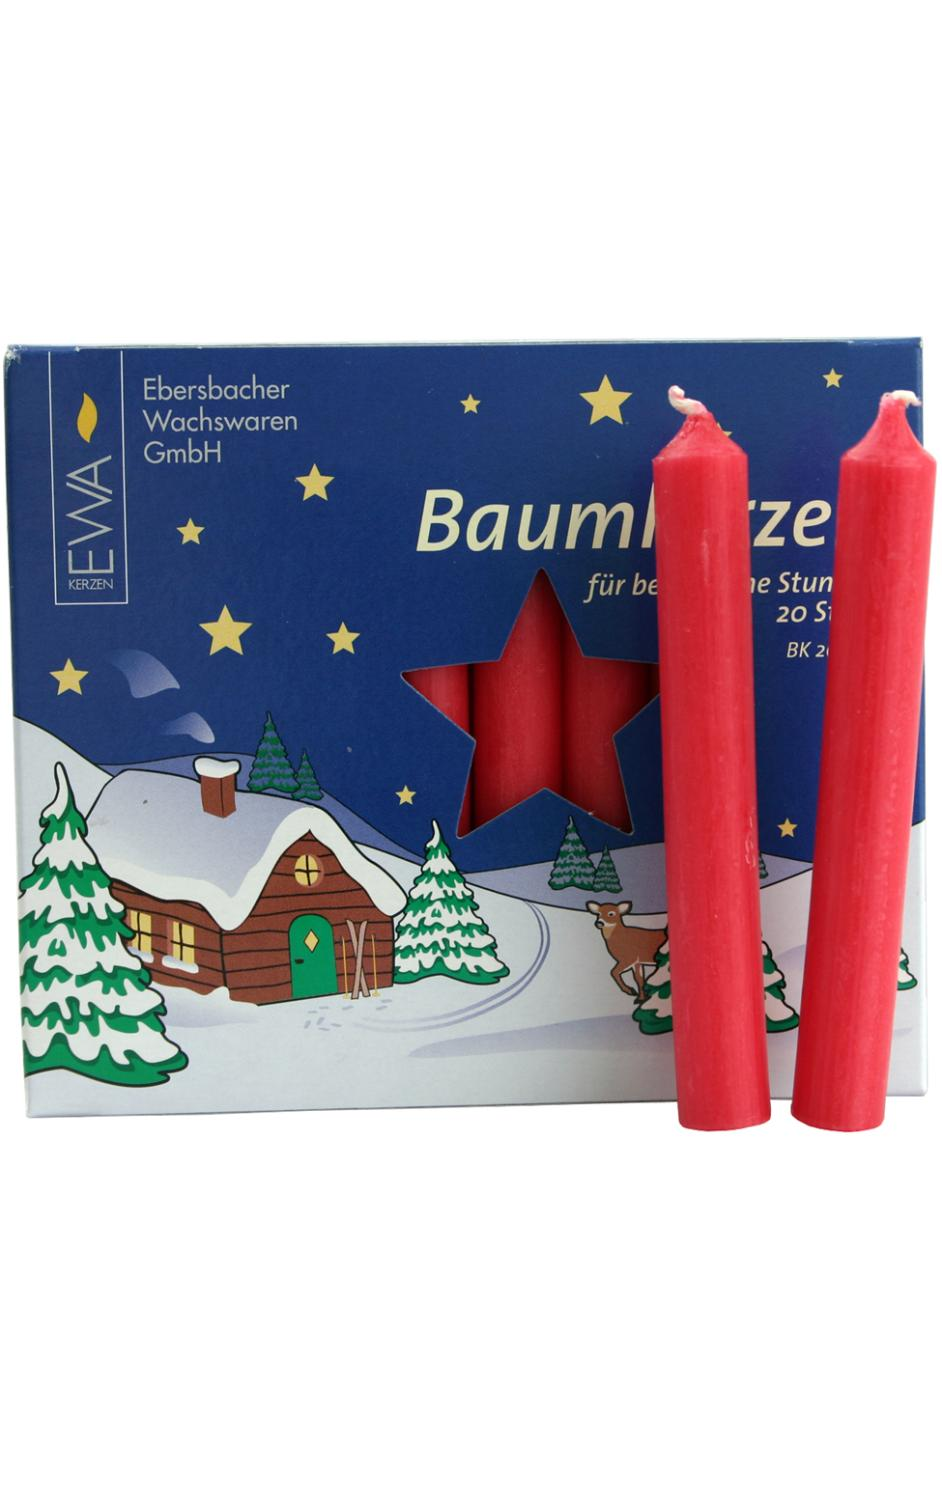 32301R - German Candle for Pyramids - Red - 4